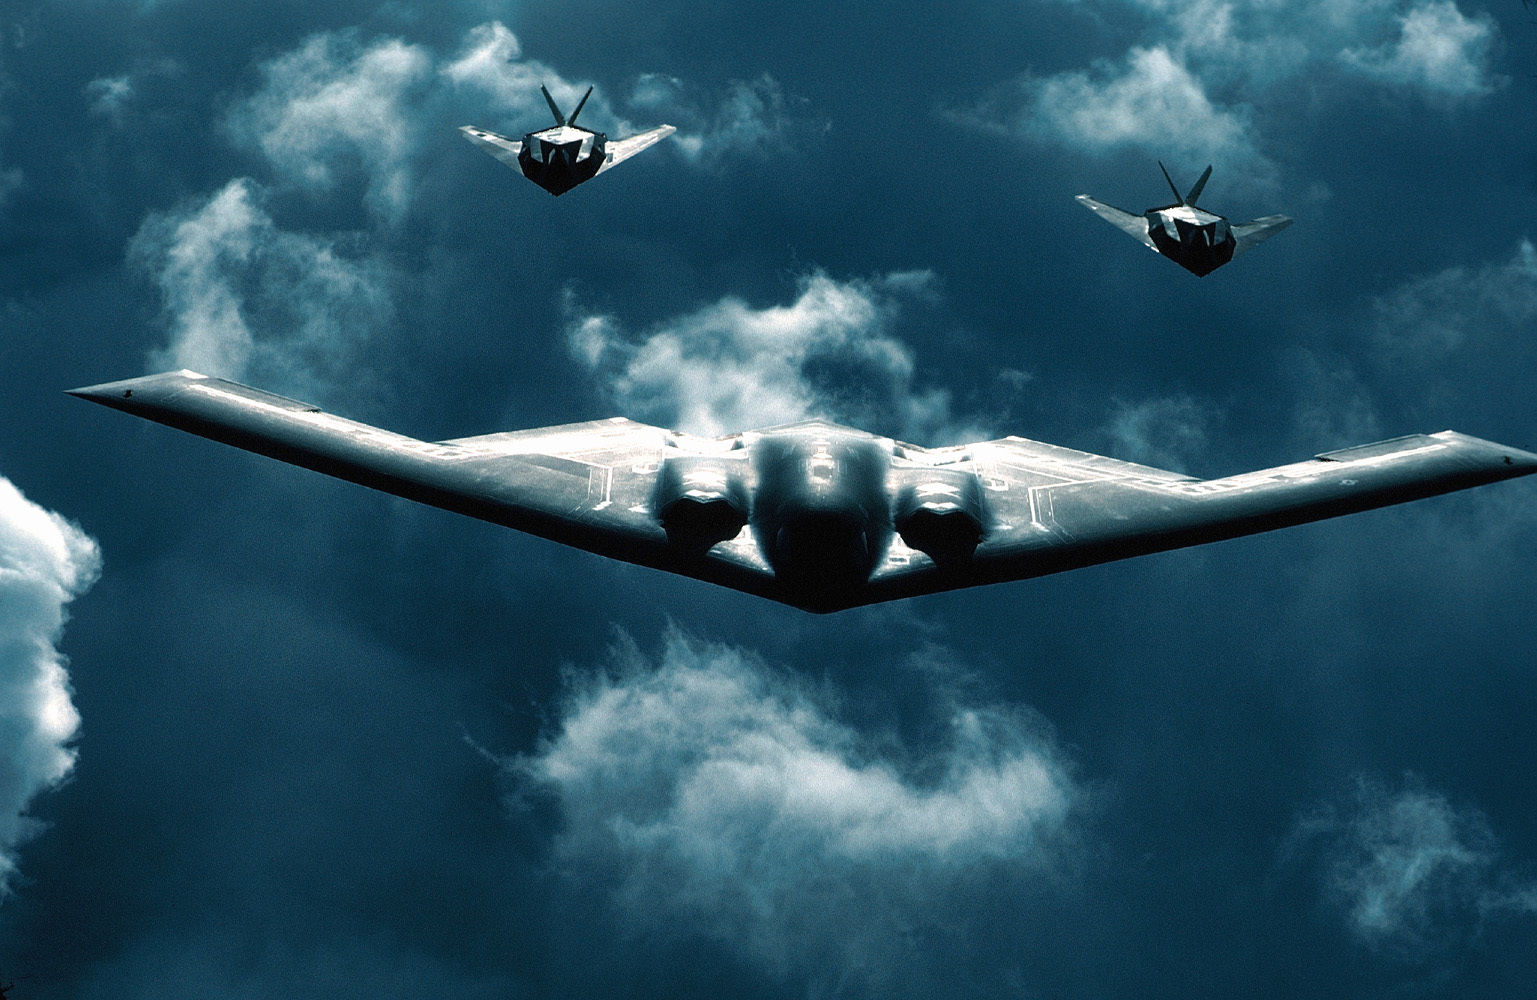 Aircraft military bomber Lockheed HD Wallpaper